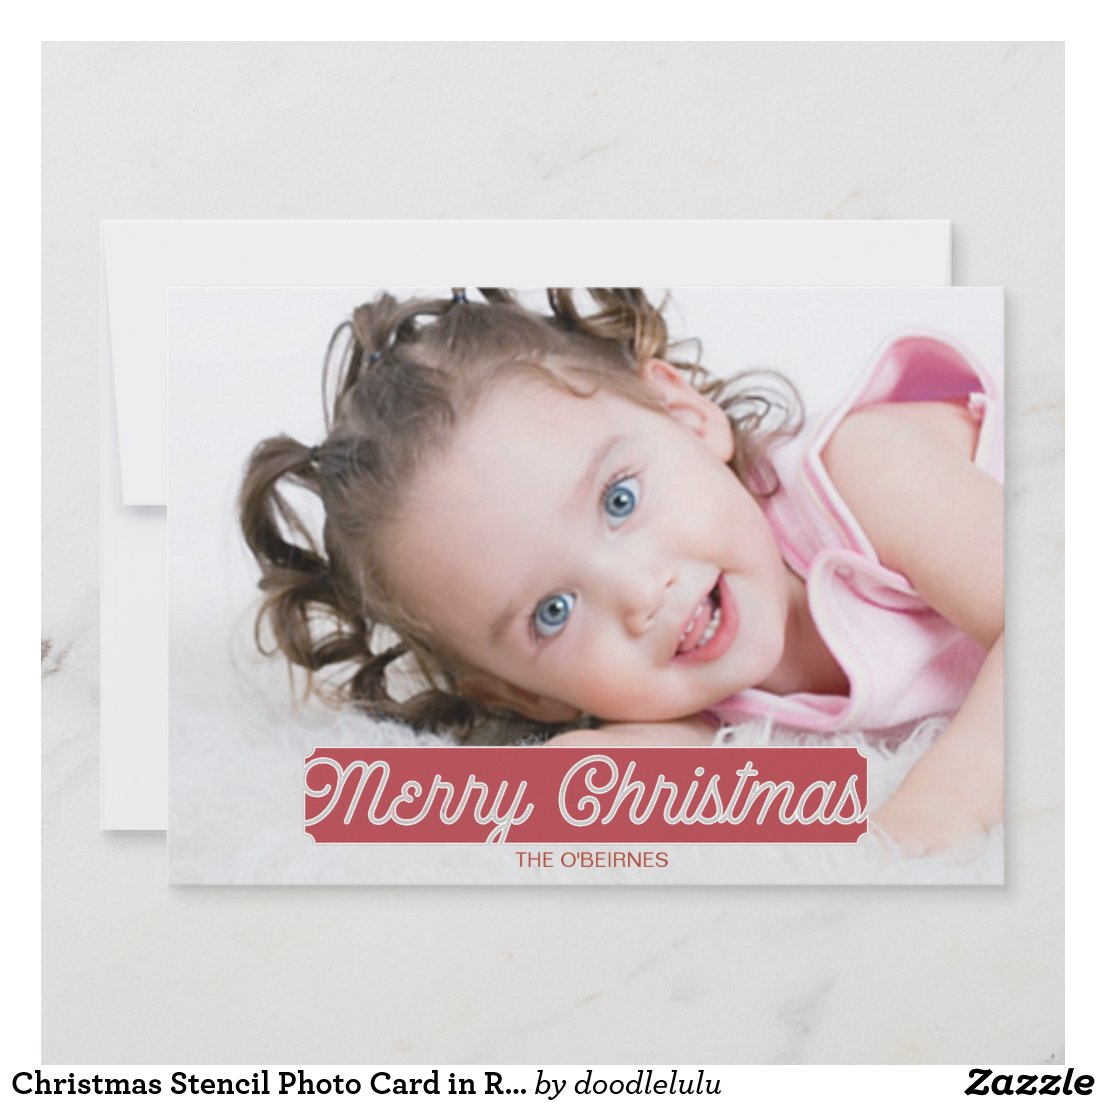 Christmas Stencil Photo Card in Red